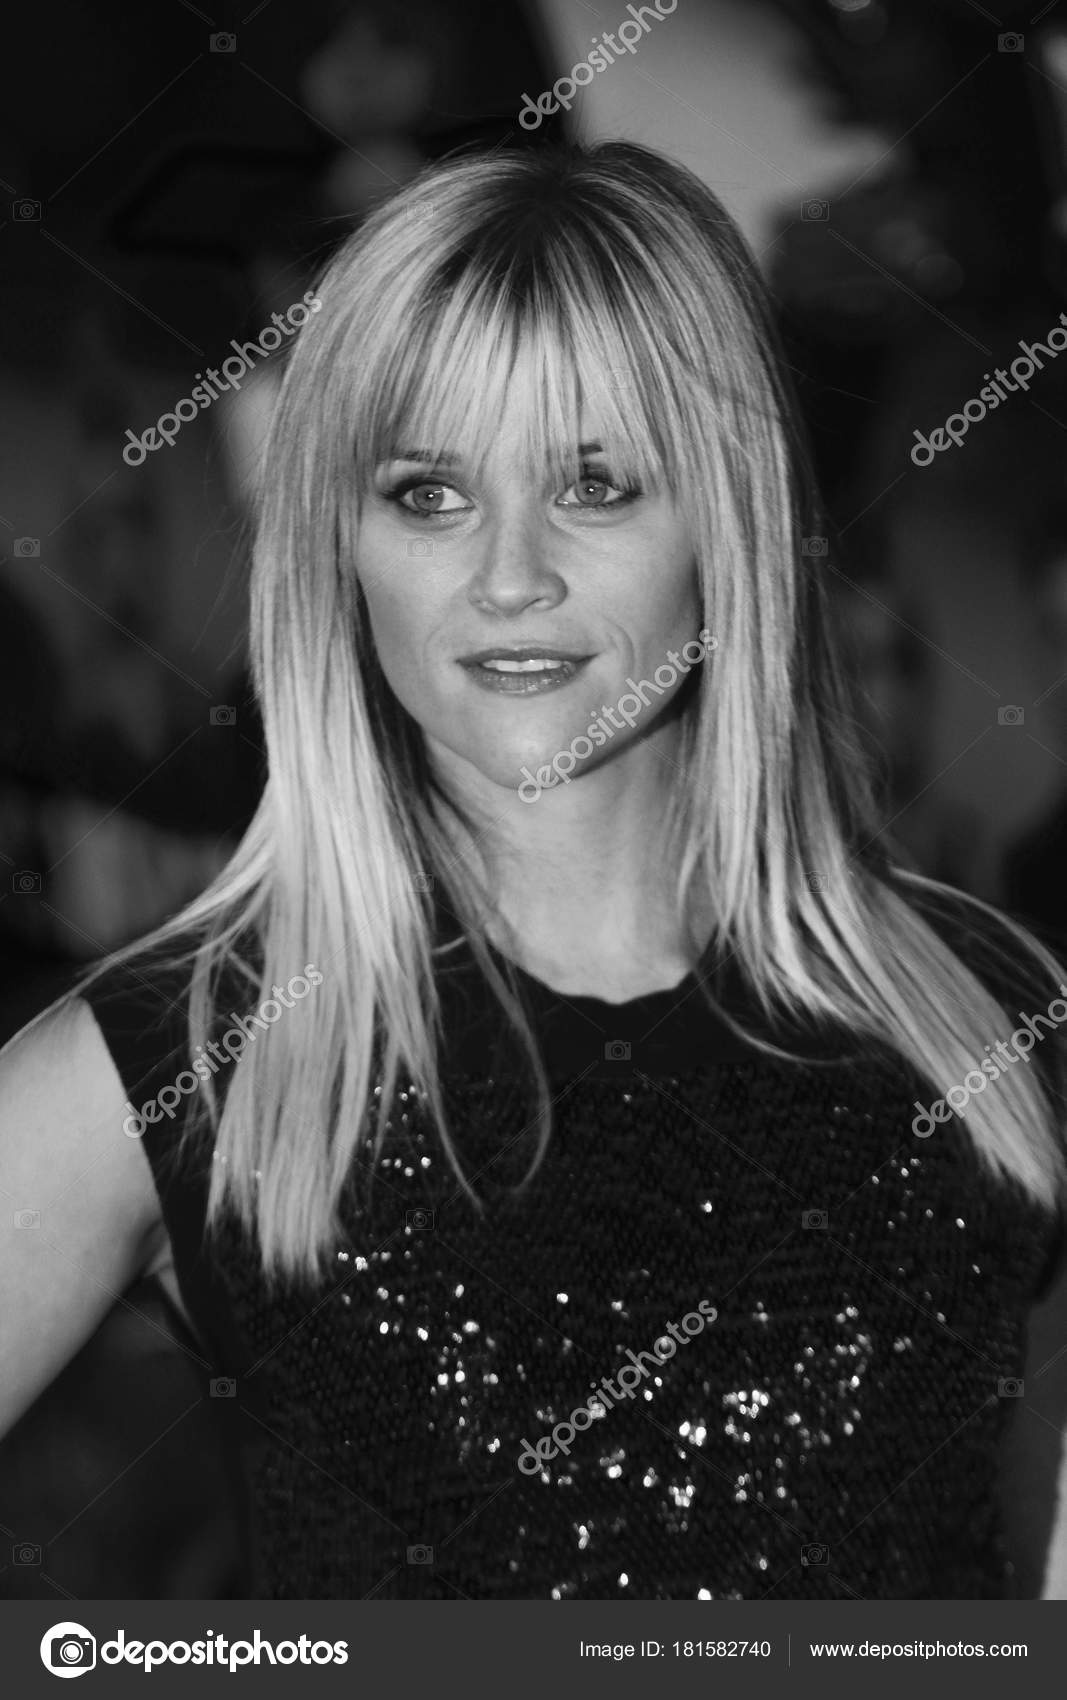 82908dcbe London Jan 2012 Reese Witherspoon Image Digitally Altered Monochrome  Arrives — Stock Photo